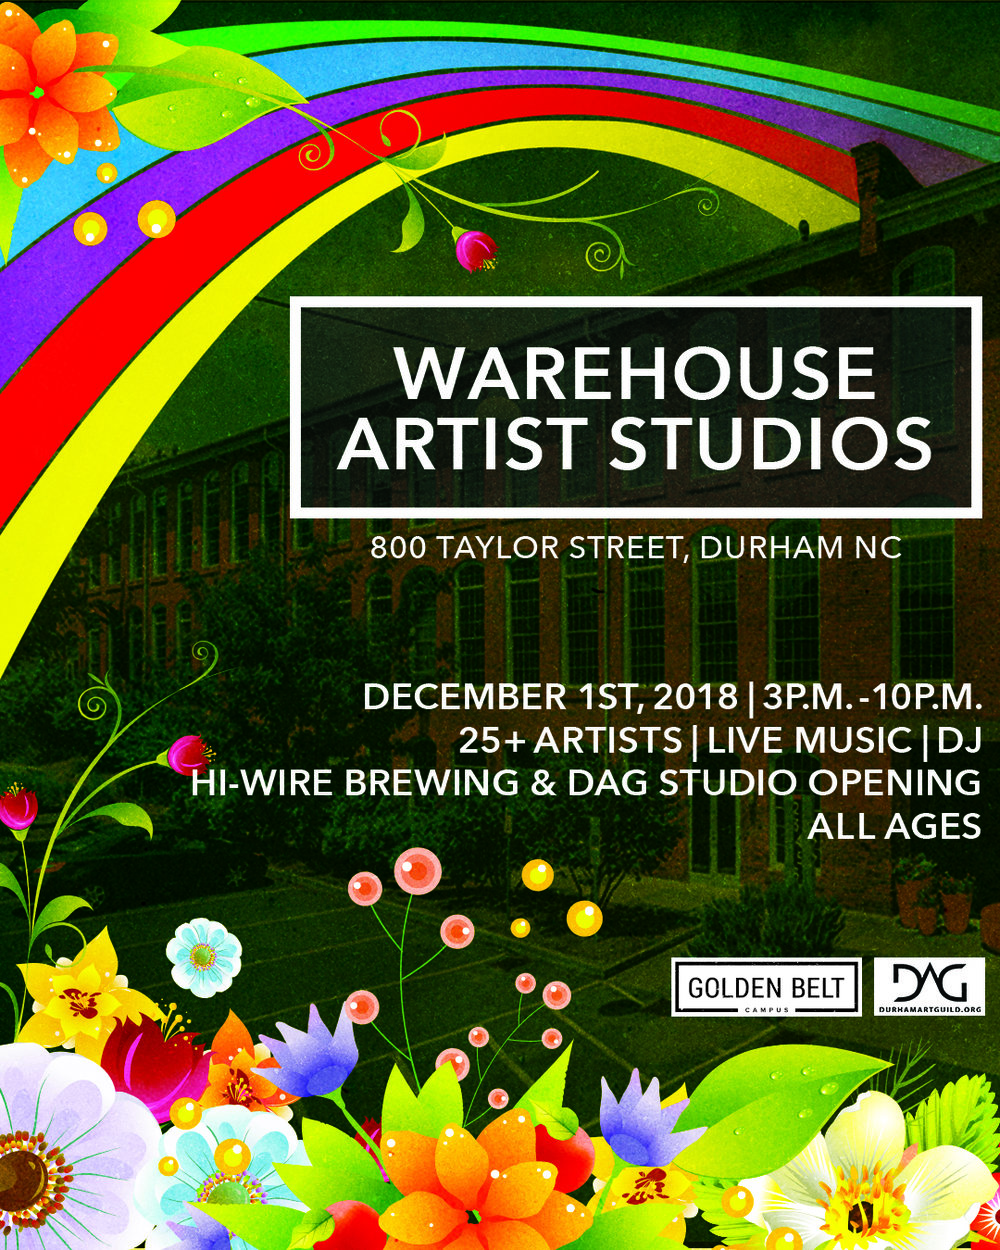 GB Warehouse Artist Studios IG.jpg